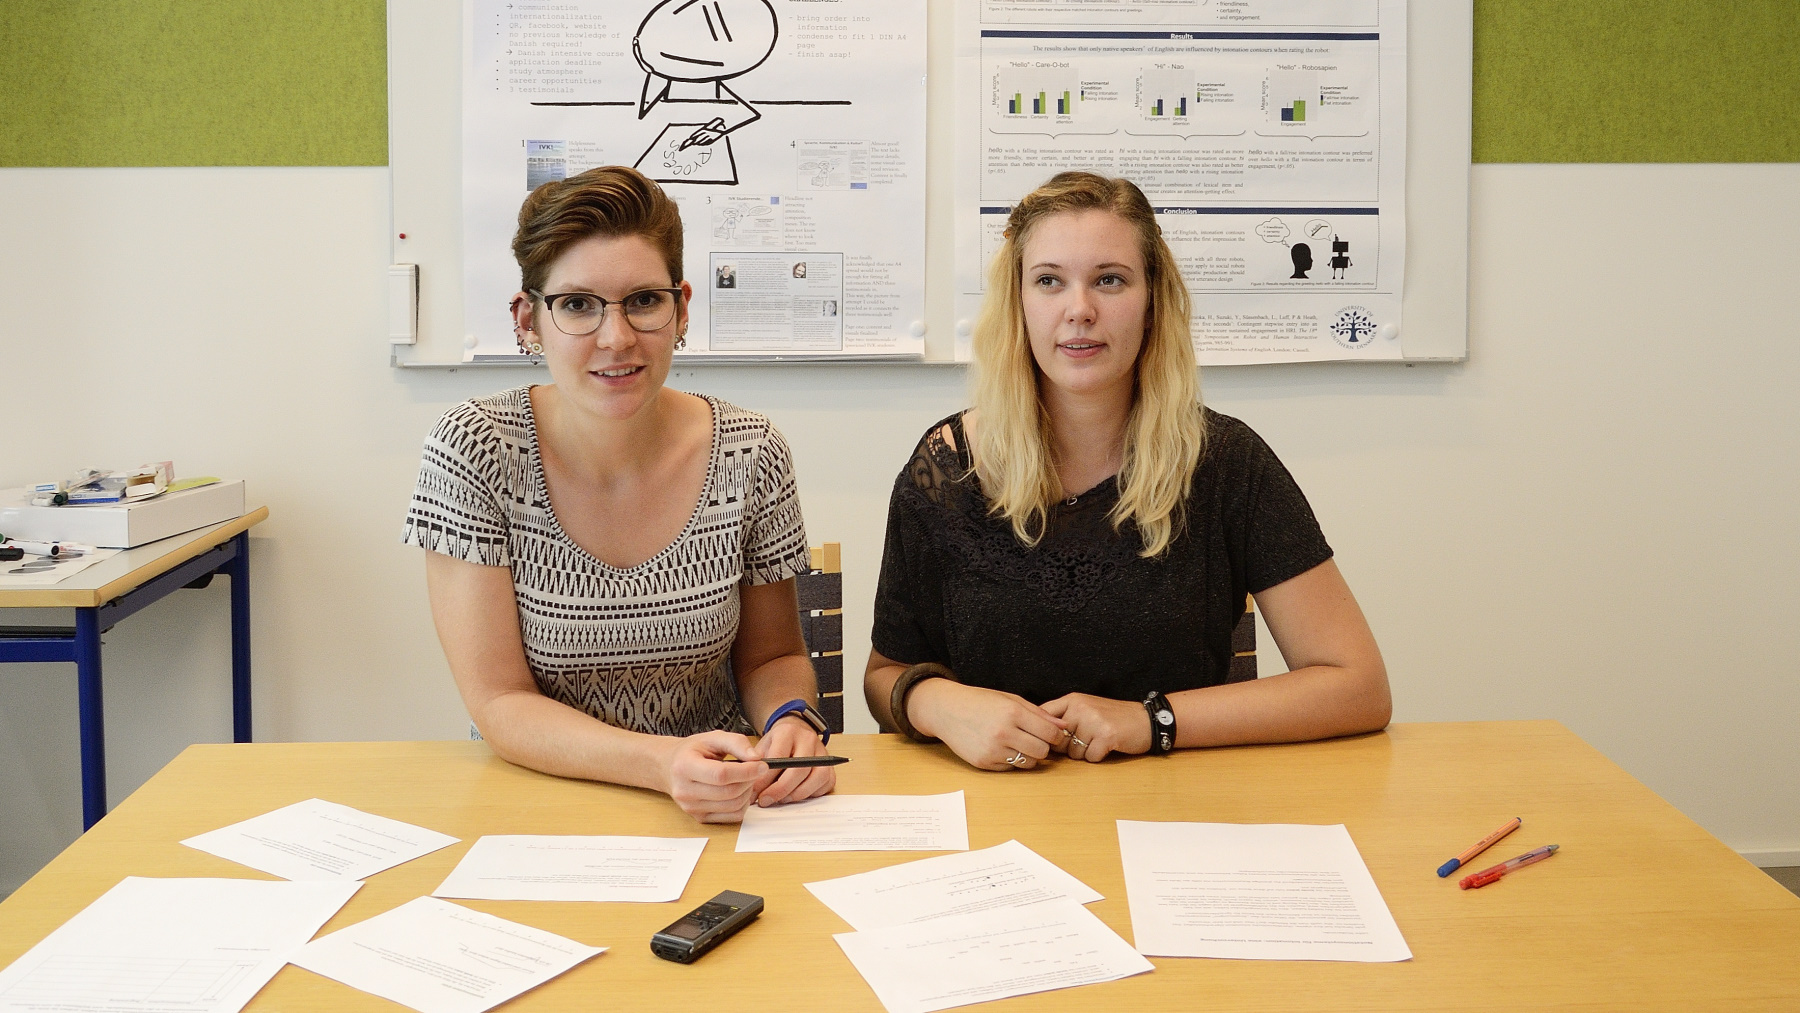 Nathalie Schümchen and Rosalyn Melissa Langedijk developing a concept for an experiment in the HRI-lab, Sønderborg.